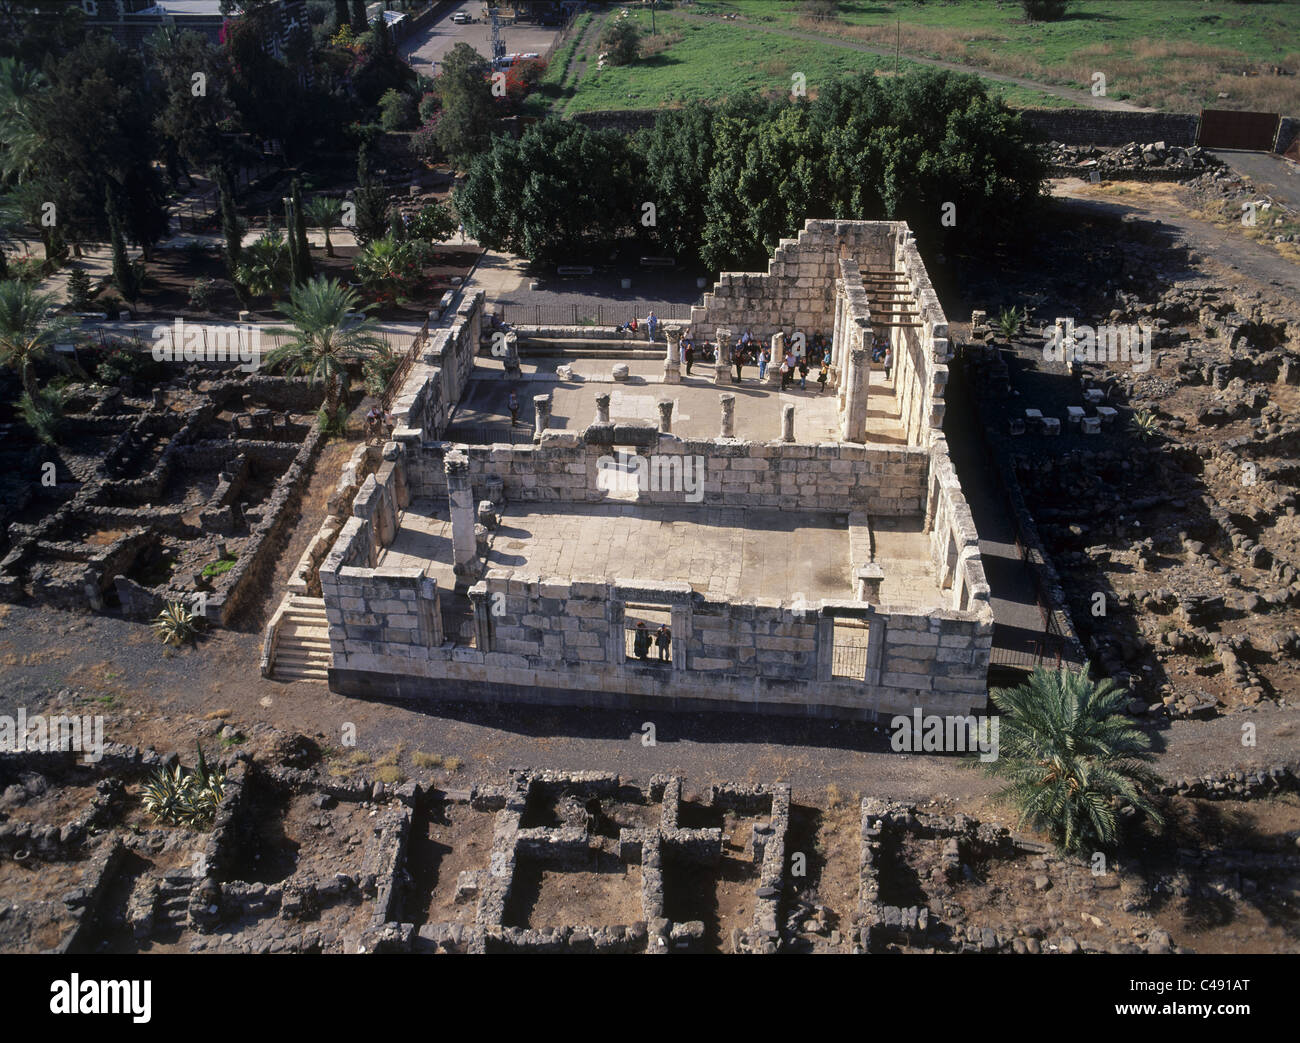 Aerial photograph of the ancient synagogue of Capernaum in the Sea of Galilee - Stock Image